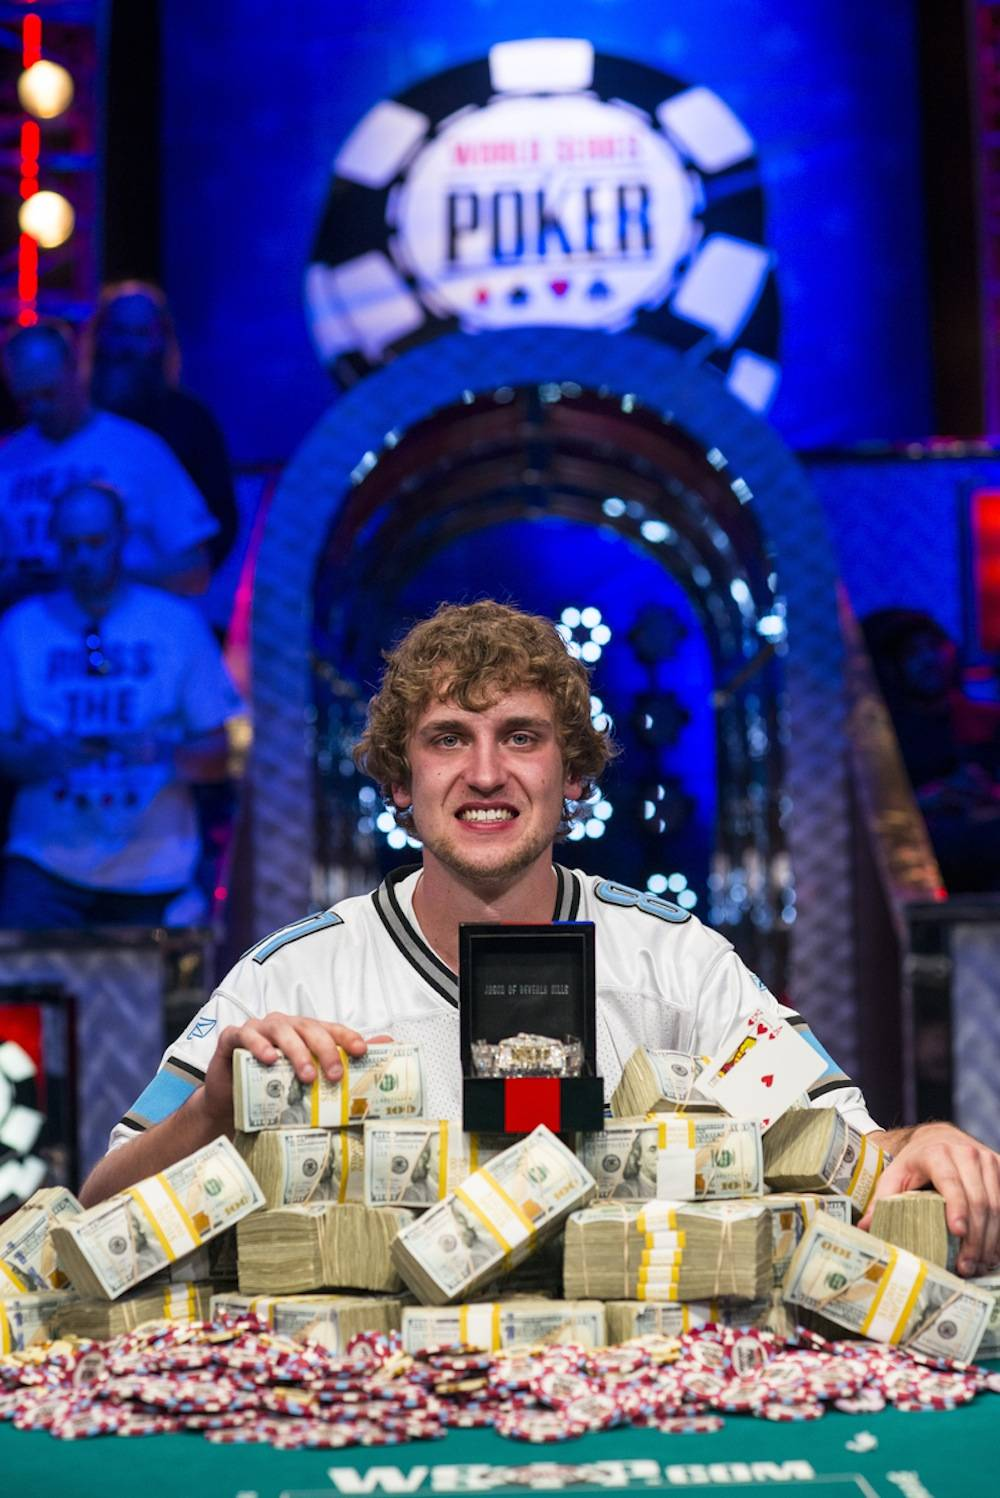 Photos: Joe Giron/WSOP